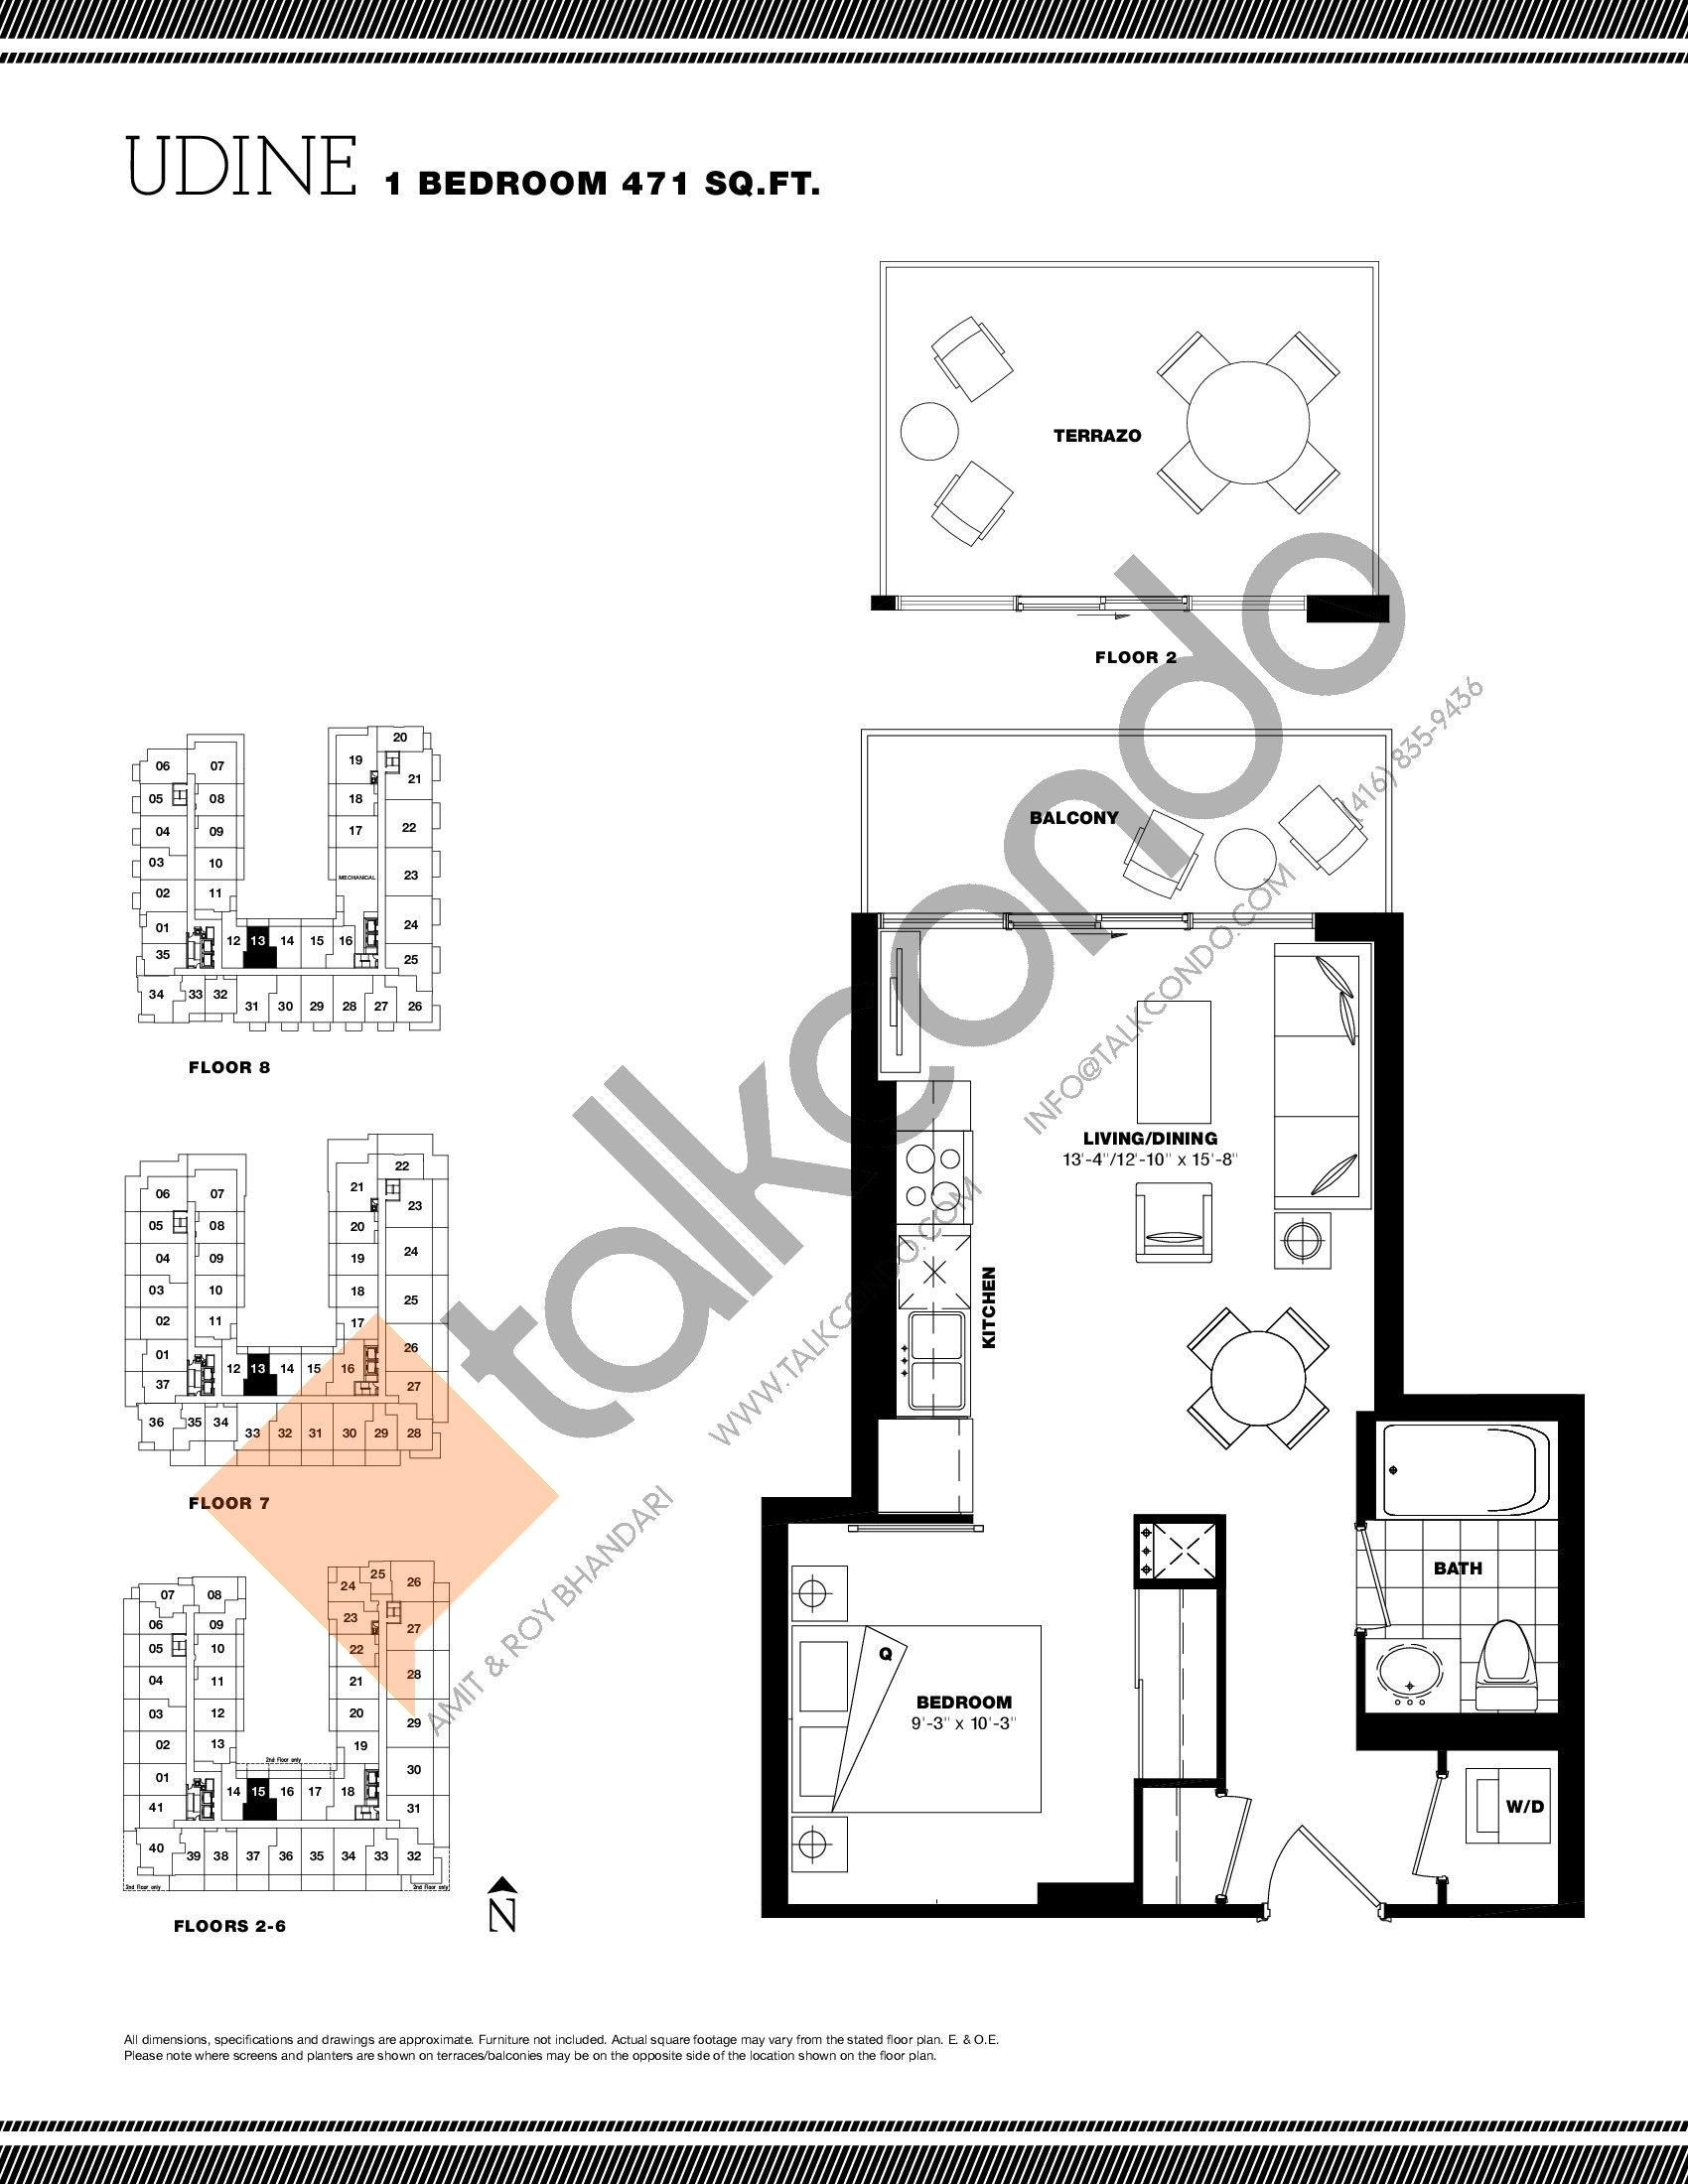 Udine Floor Plan at Residenze Palazzo at Treviso 3 Condos - 471 sq.ft